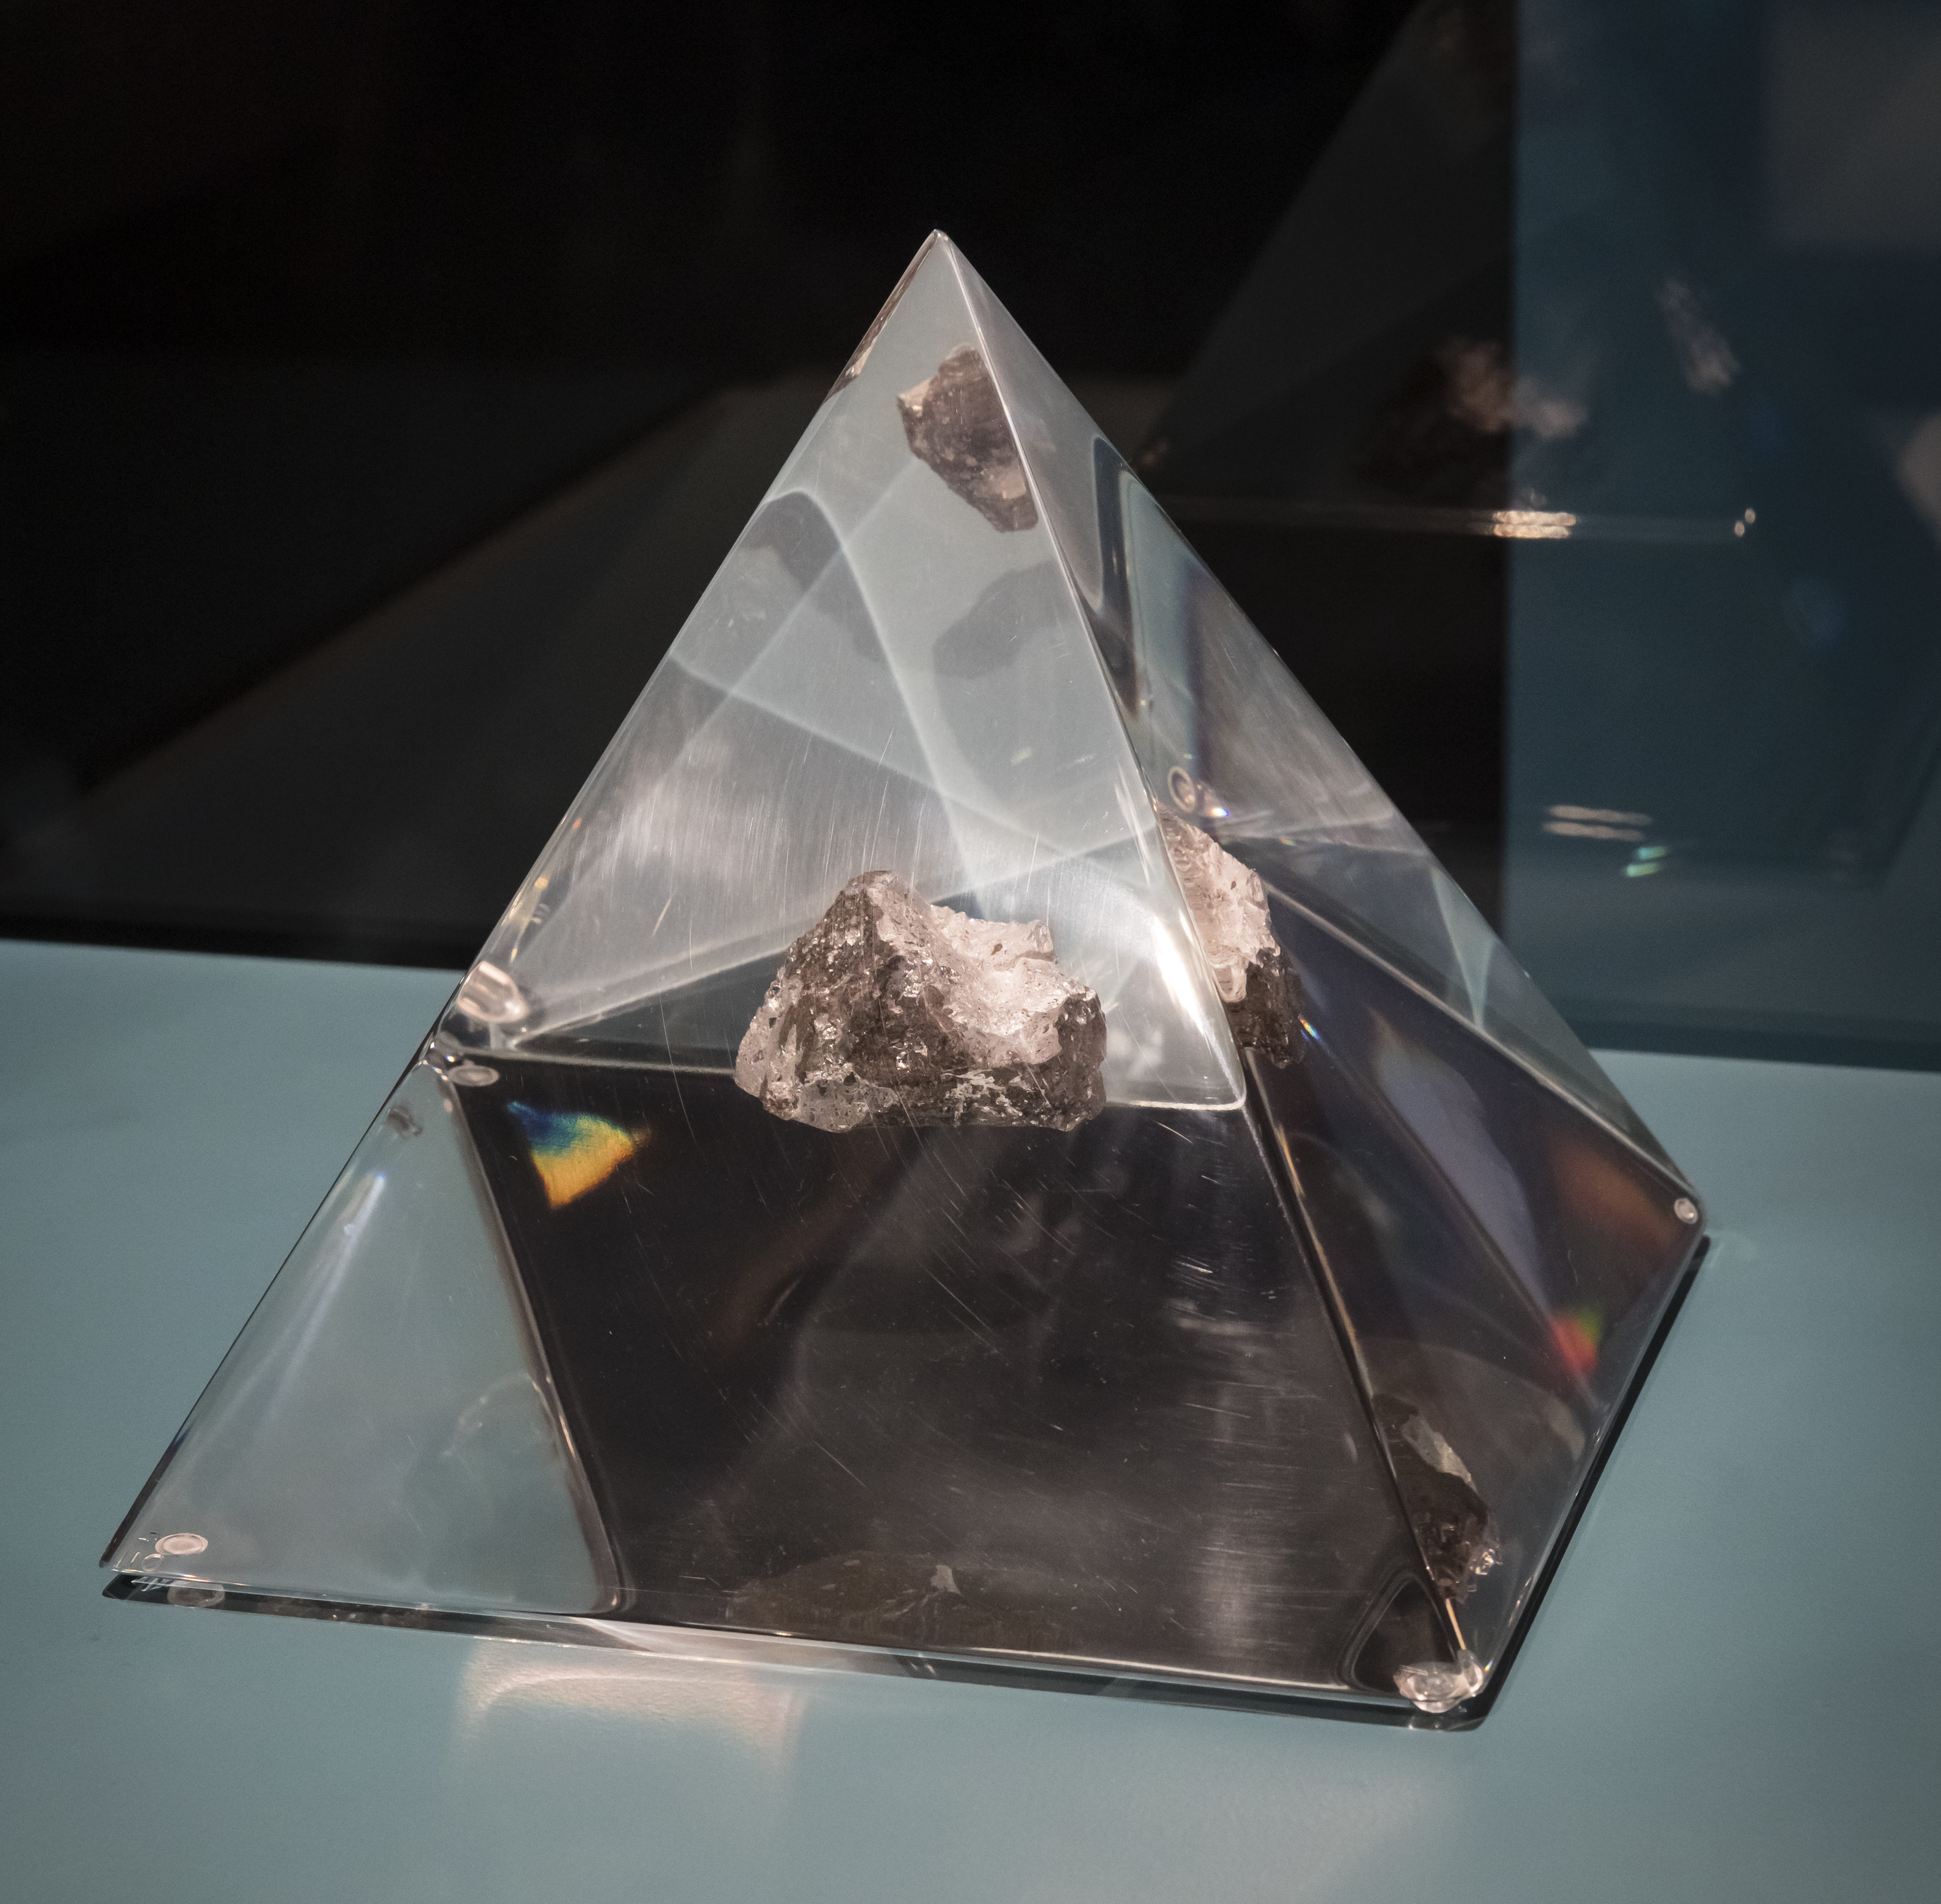 A small piece of rock, appoximately 3cm in diameter, encased in a perspex pyramid.